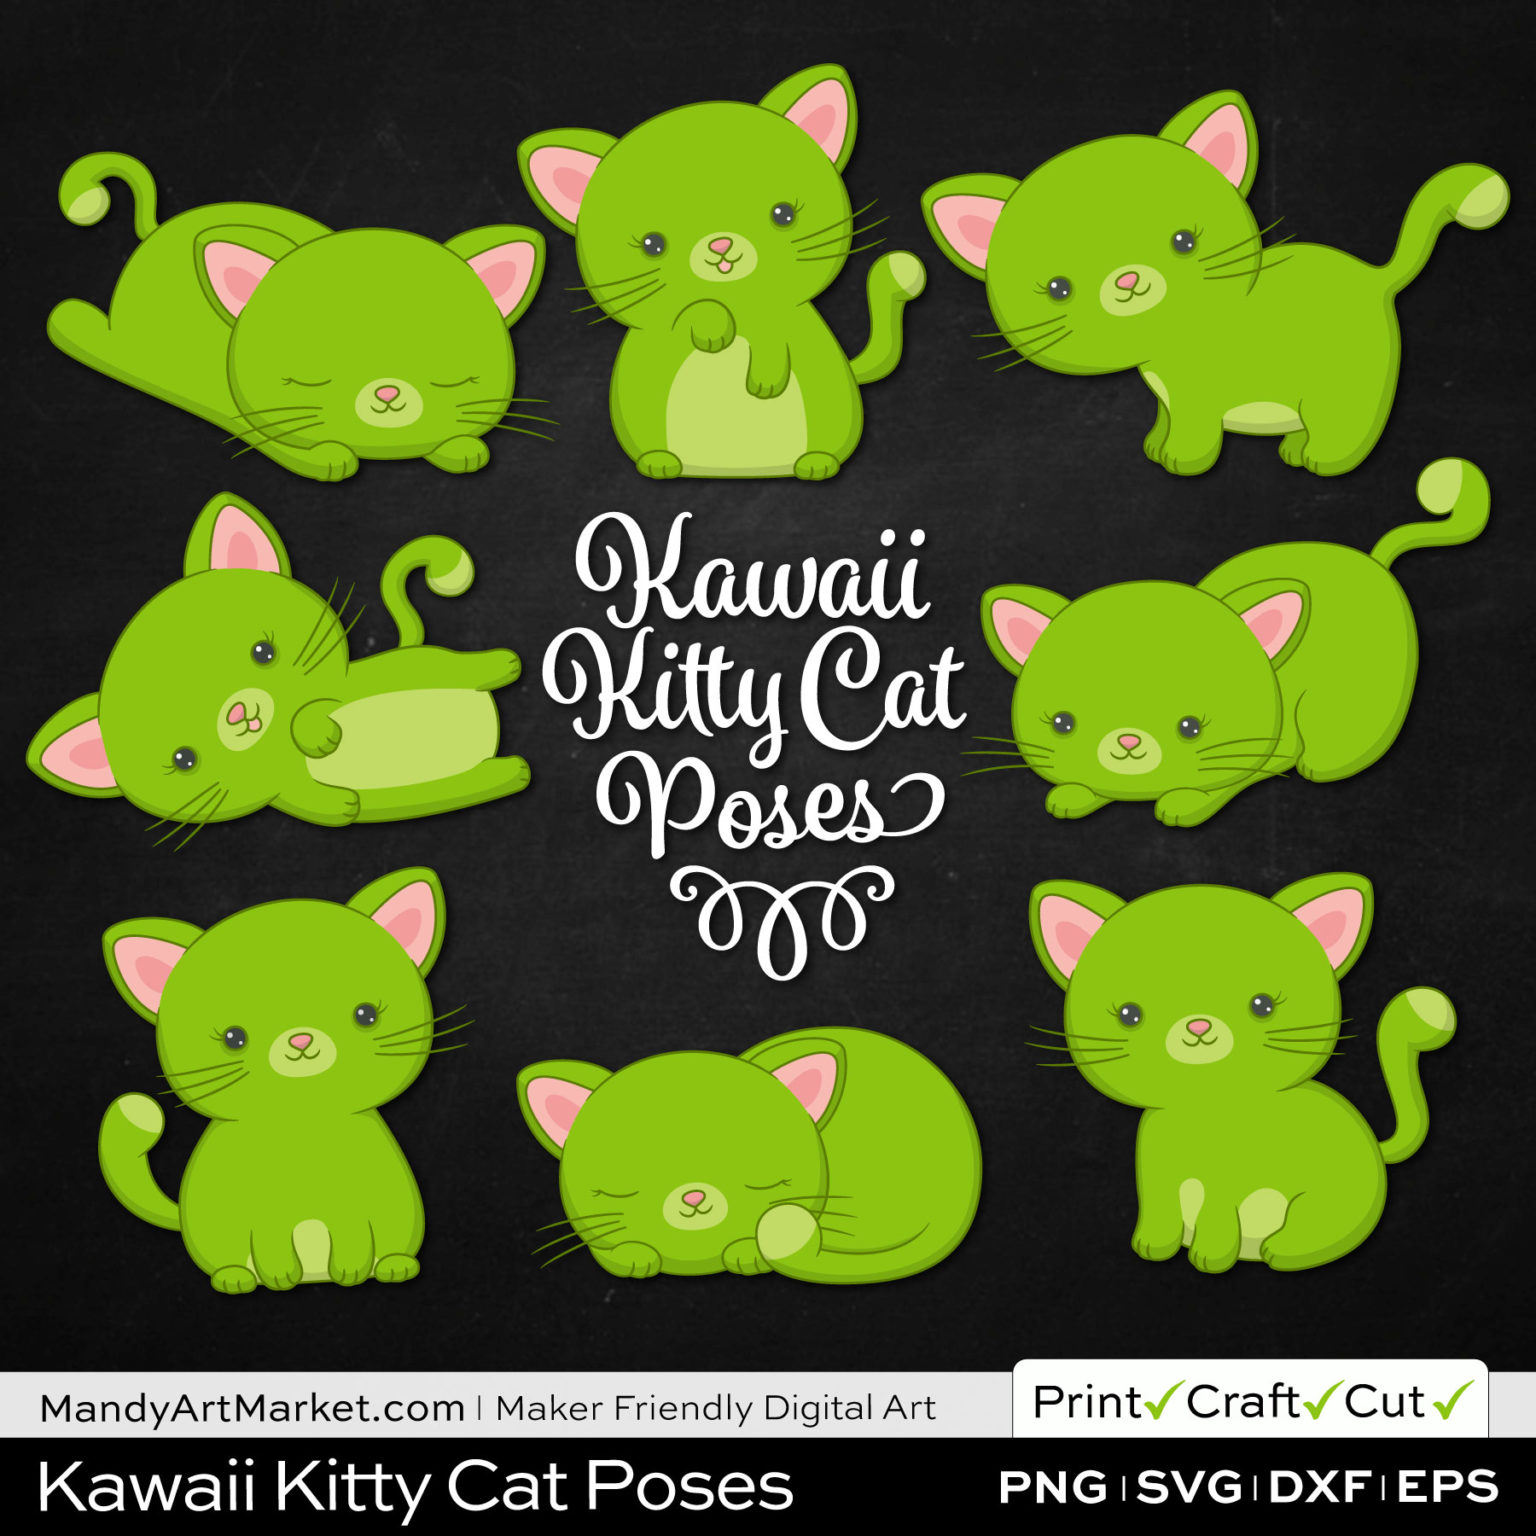 Lime Green Kawaii Kitty Cat Poses Clipart on Black Background